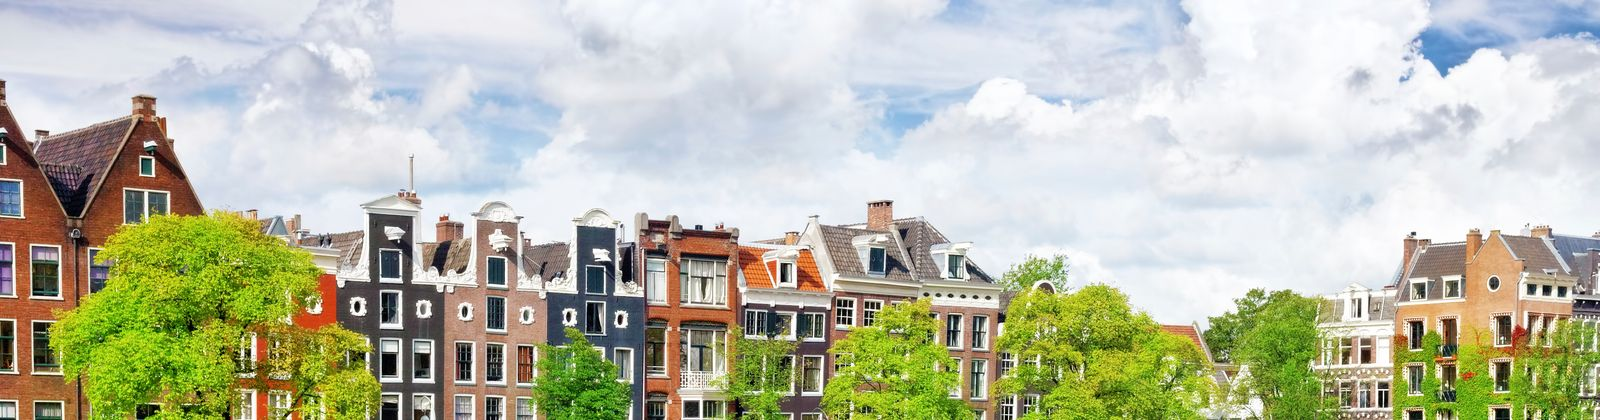 Top 15 attractions and things to do in Amsterdam